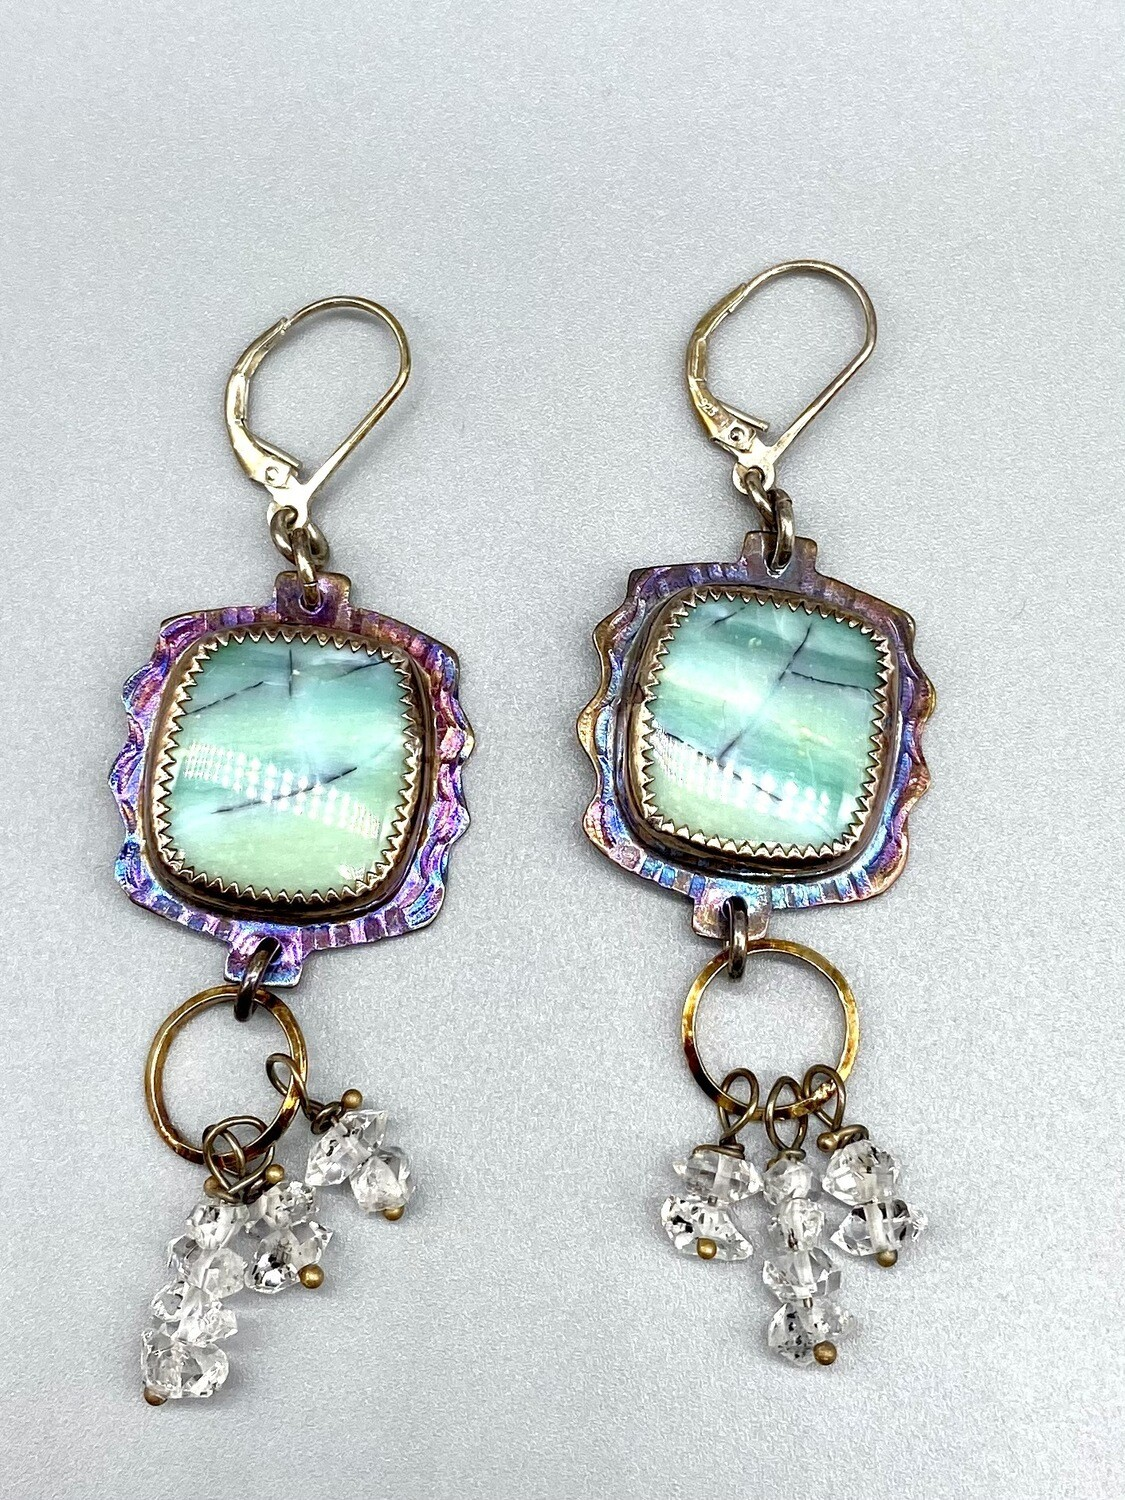 Blue Opal Petrified Wood w/Herkimer Diamond Dangle Leverback Earrings, s/s- Julie Shaw - Cocoa FL